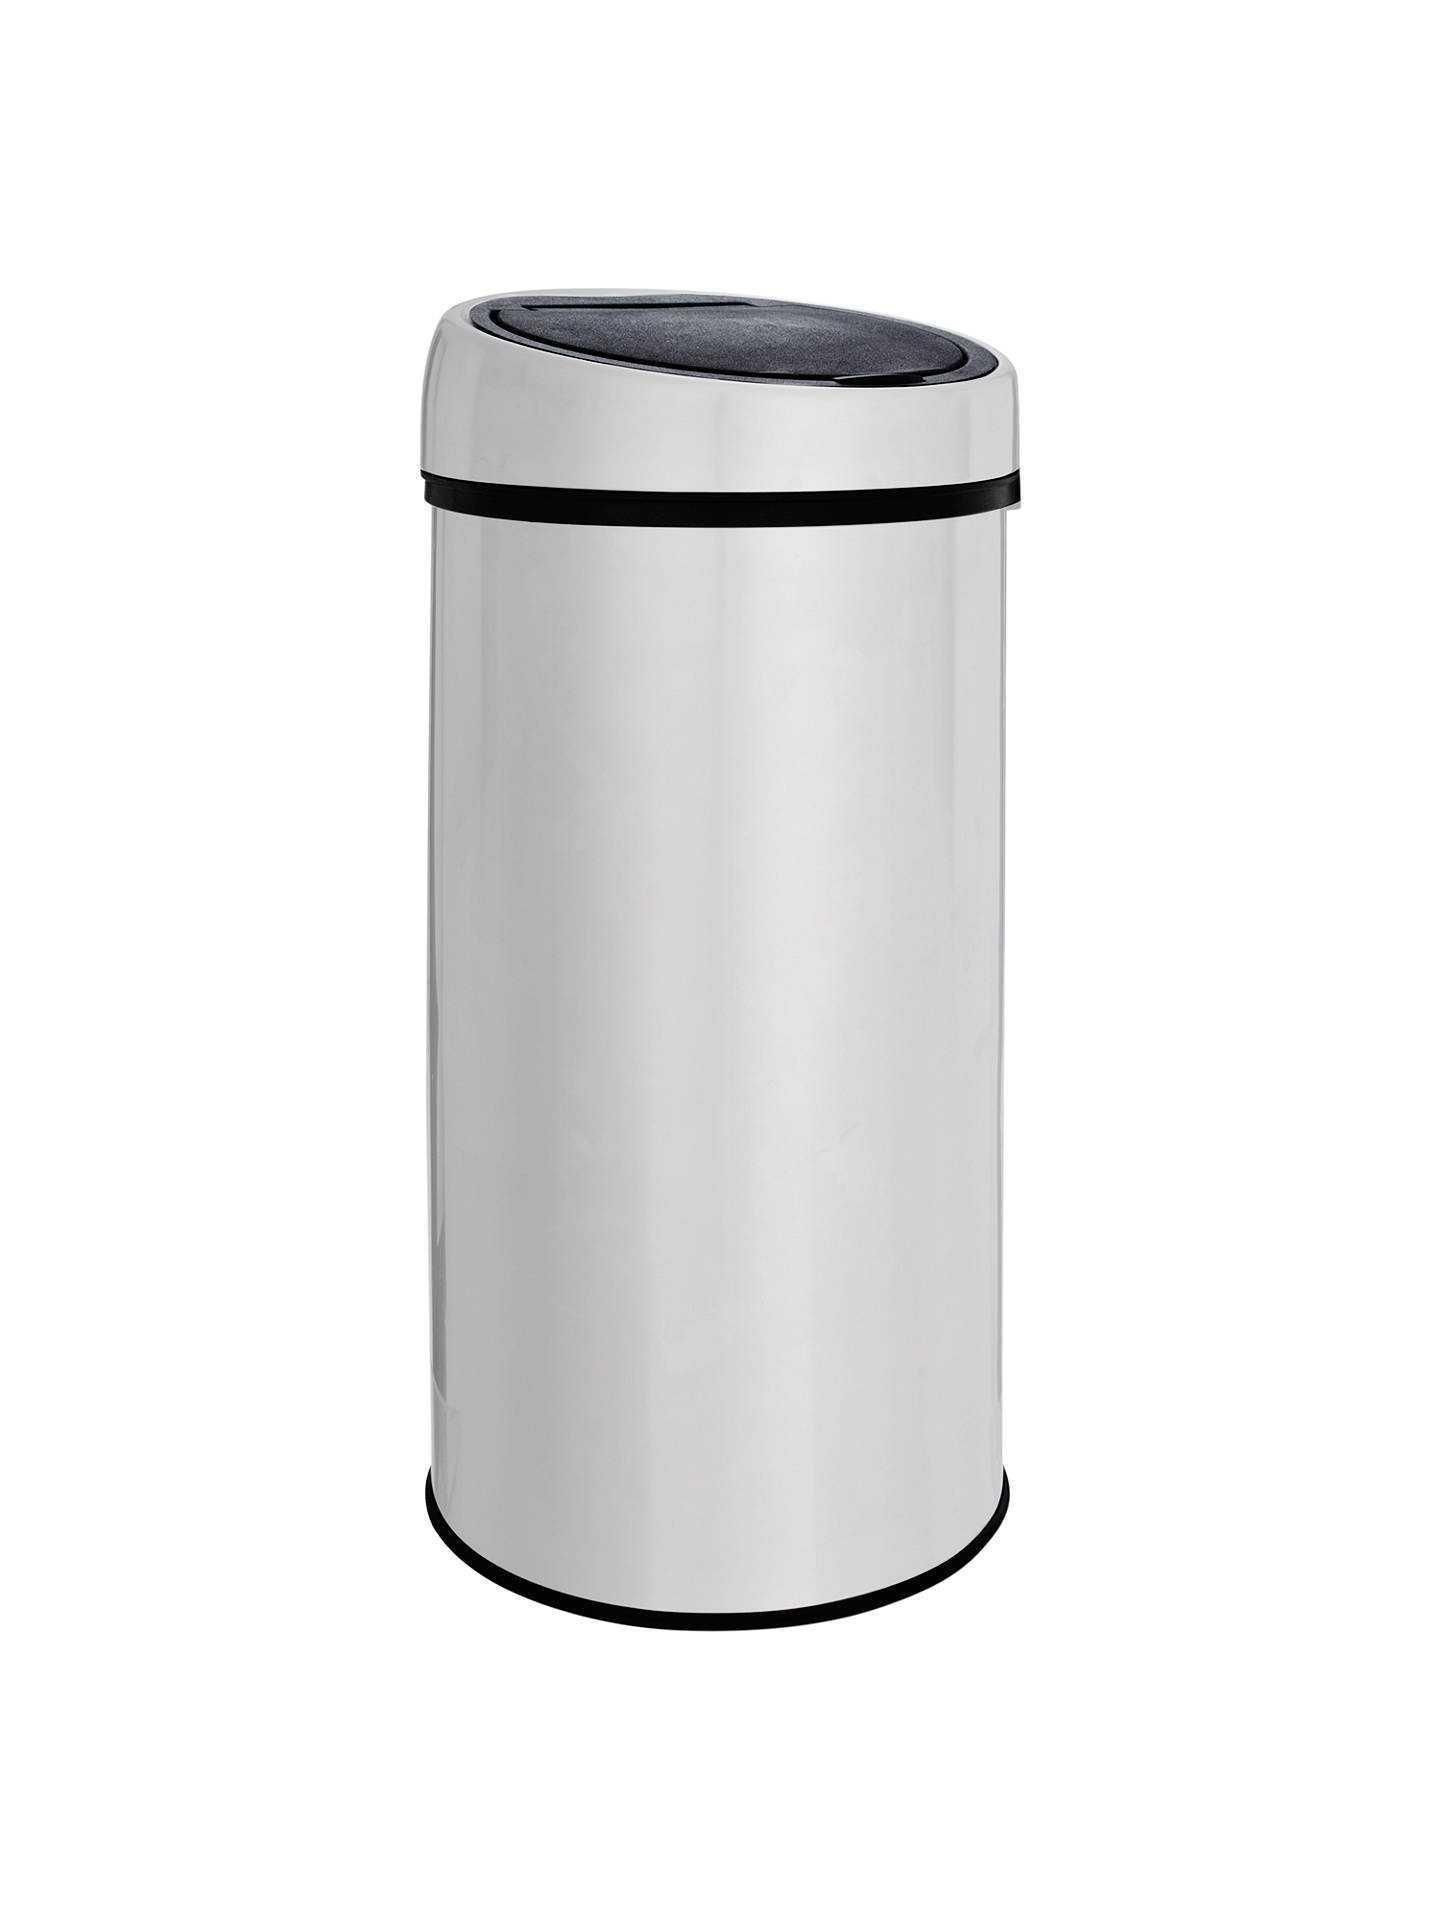 RRP £55 Boxed John Lewis 40L Touch Bin Stainless Steel